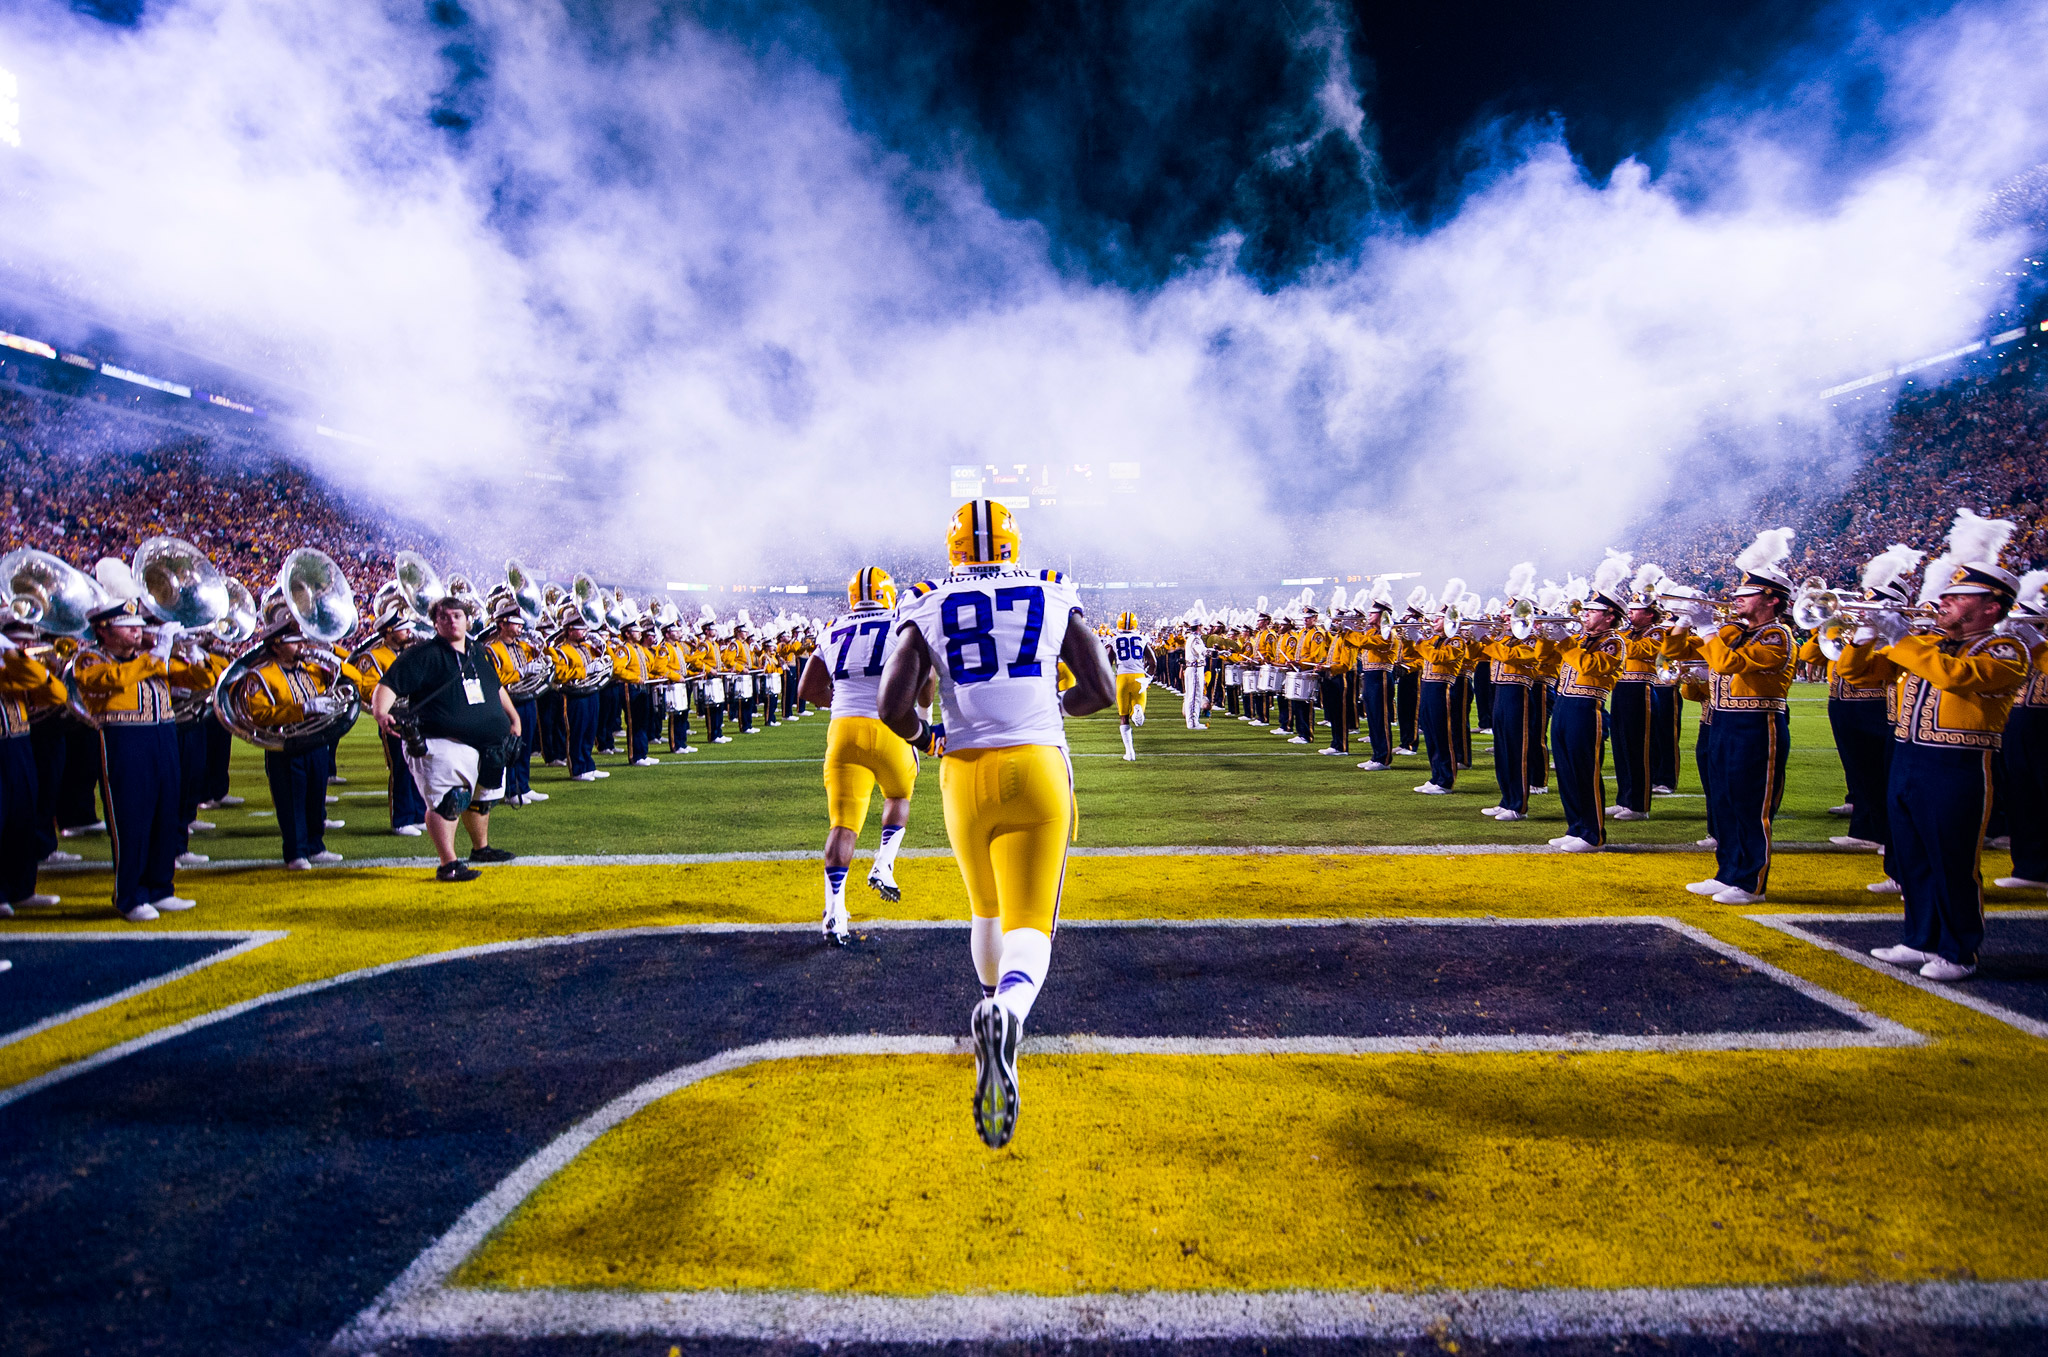 LSU players take the field